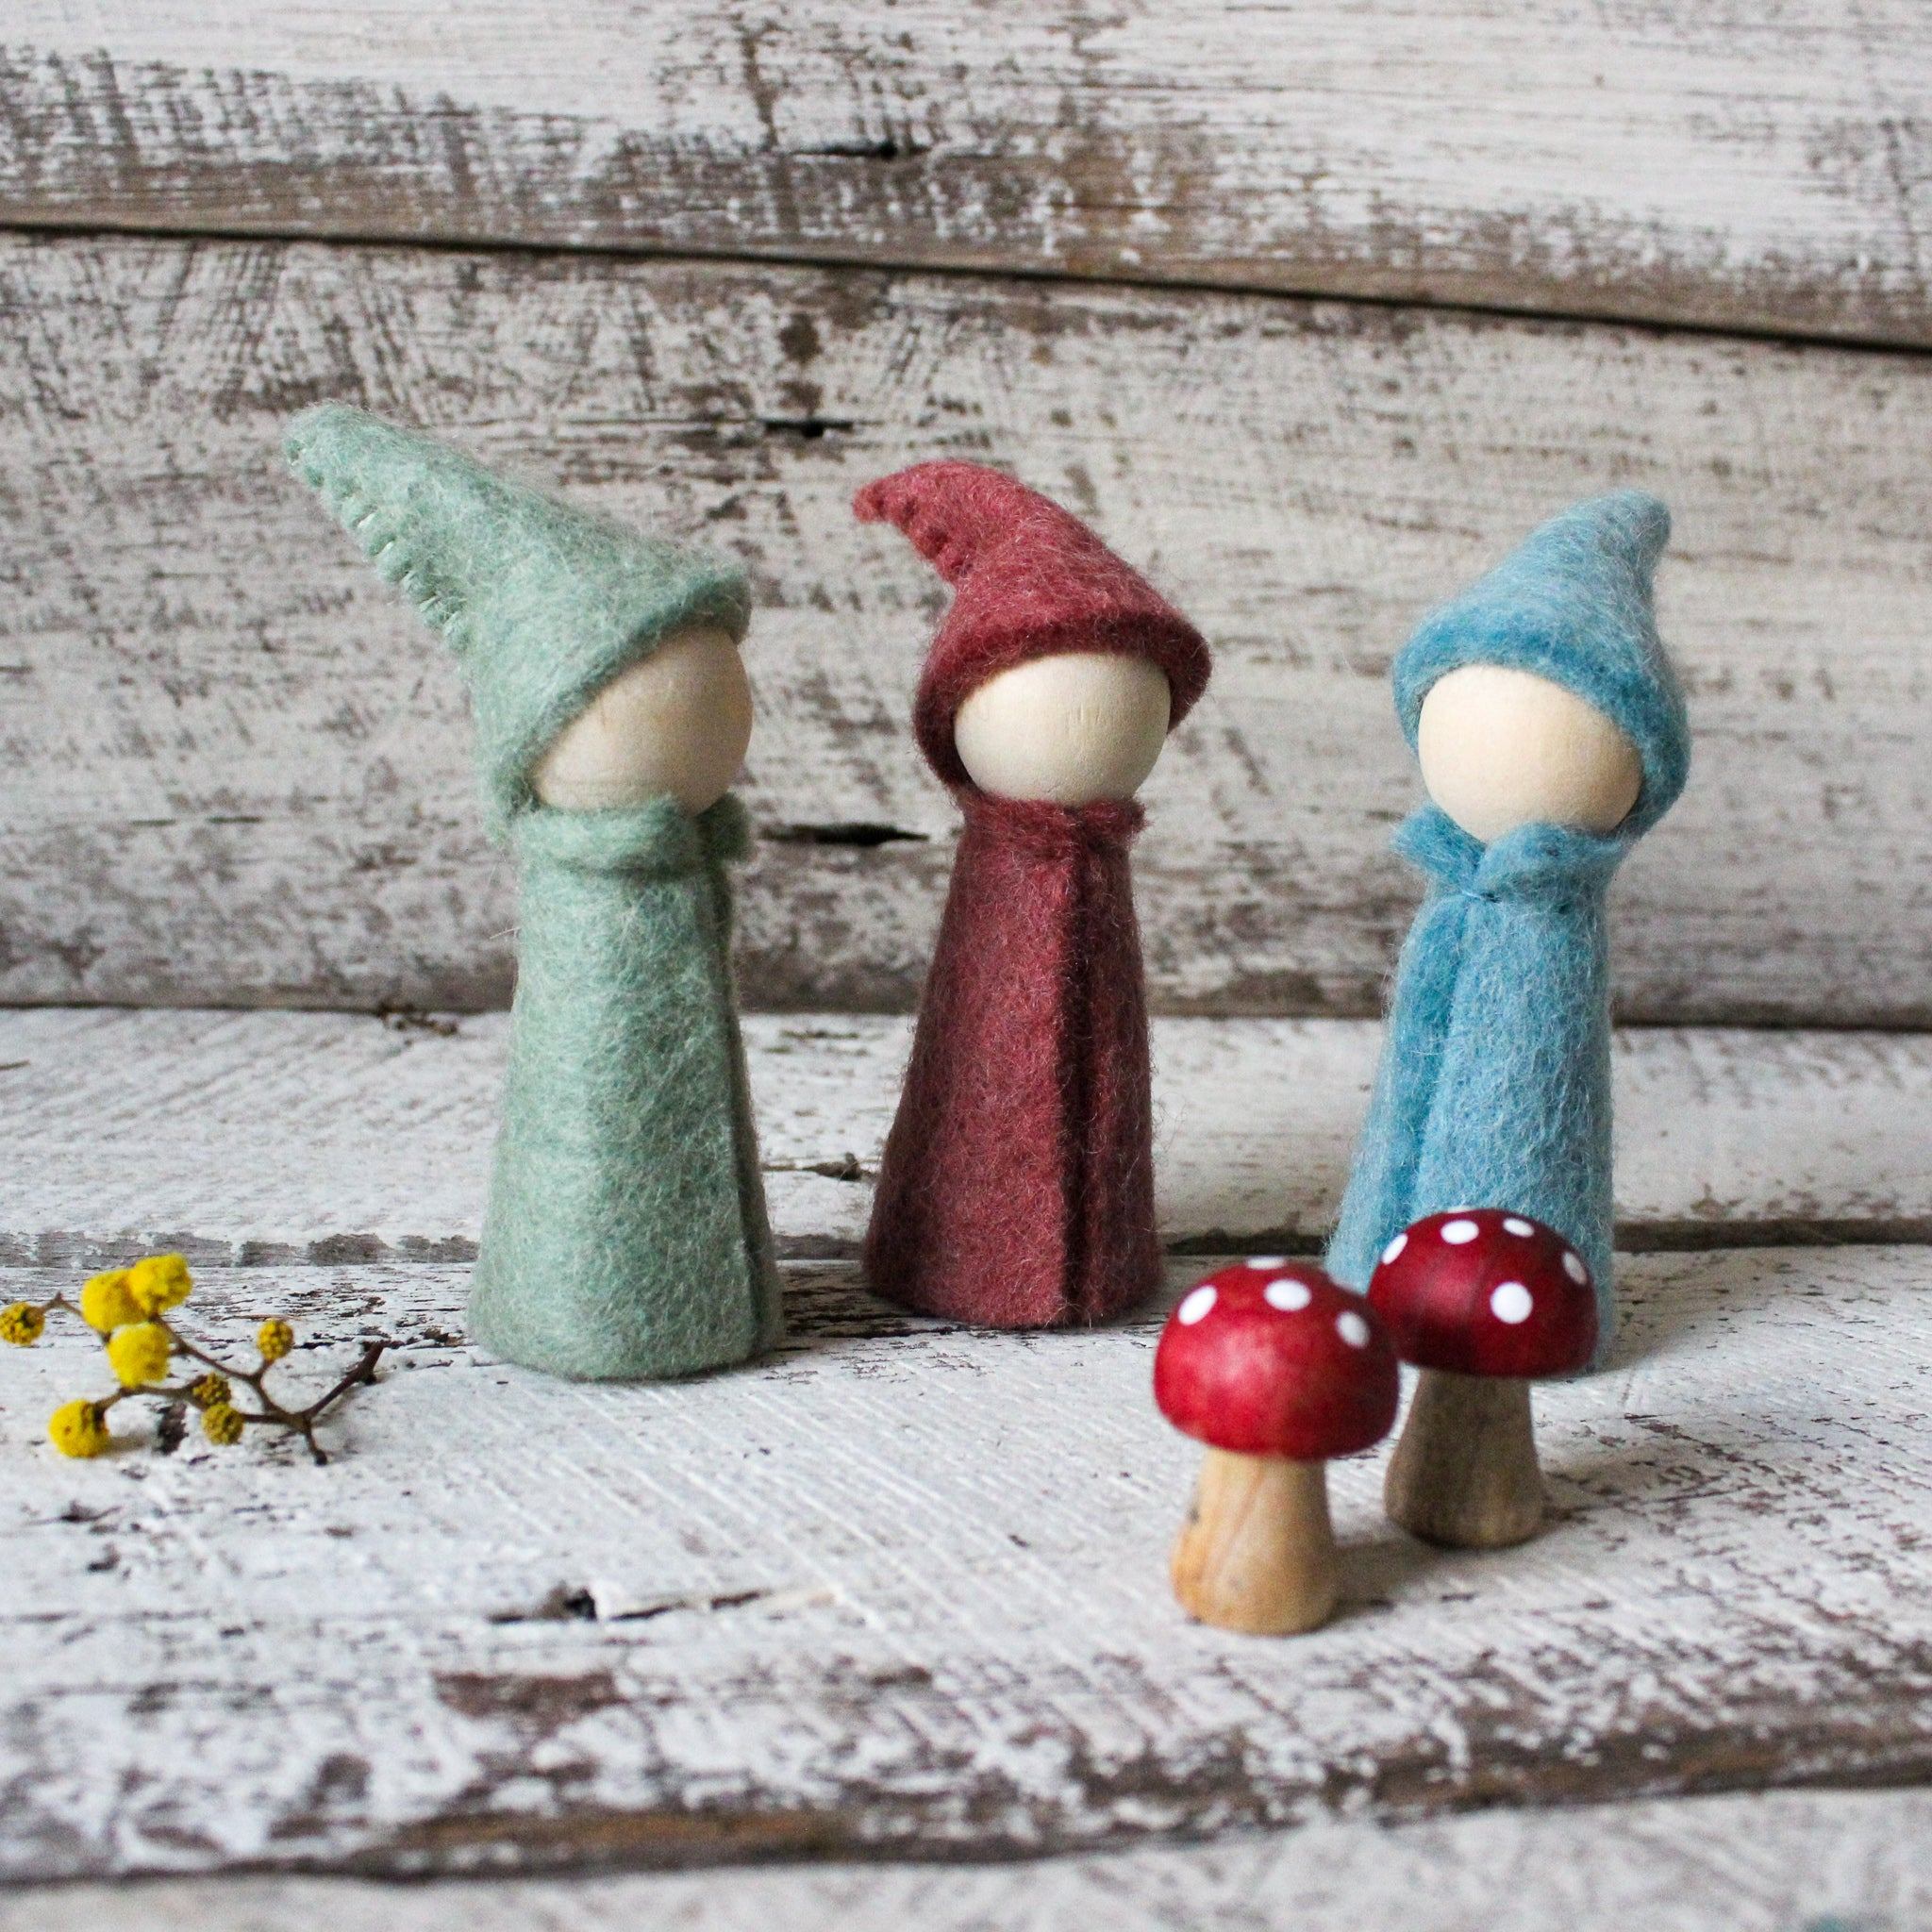 Little felt peg doll gnomes